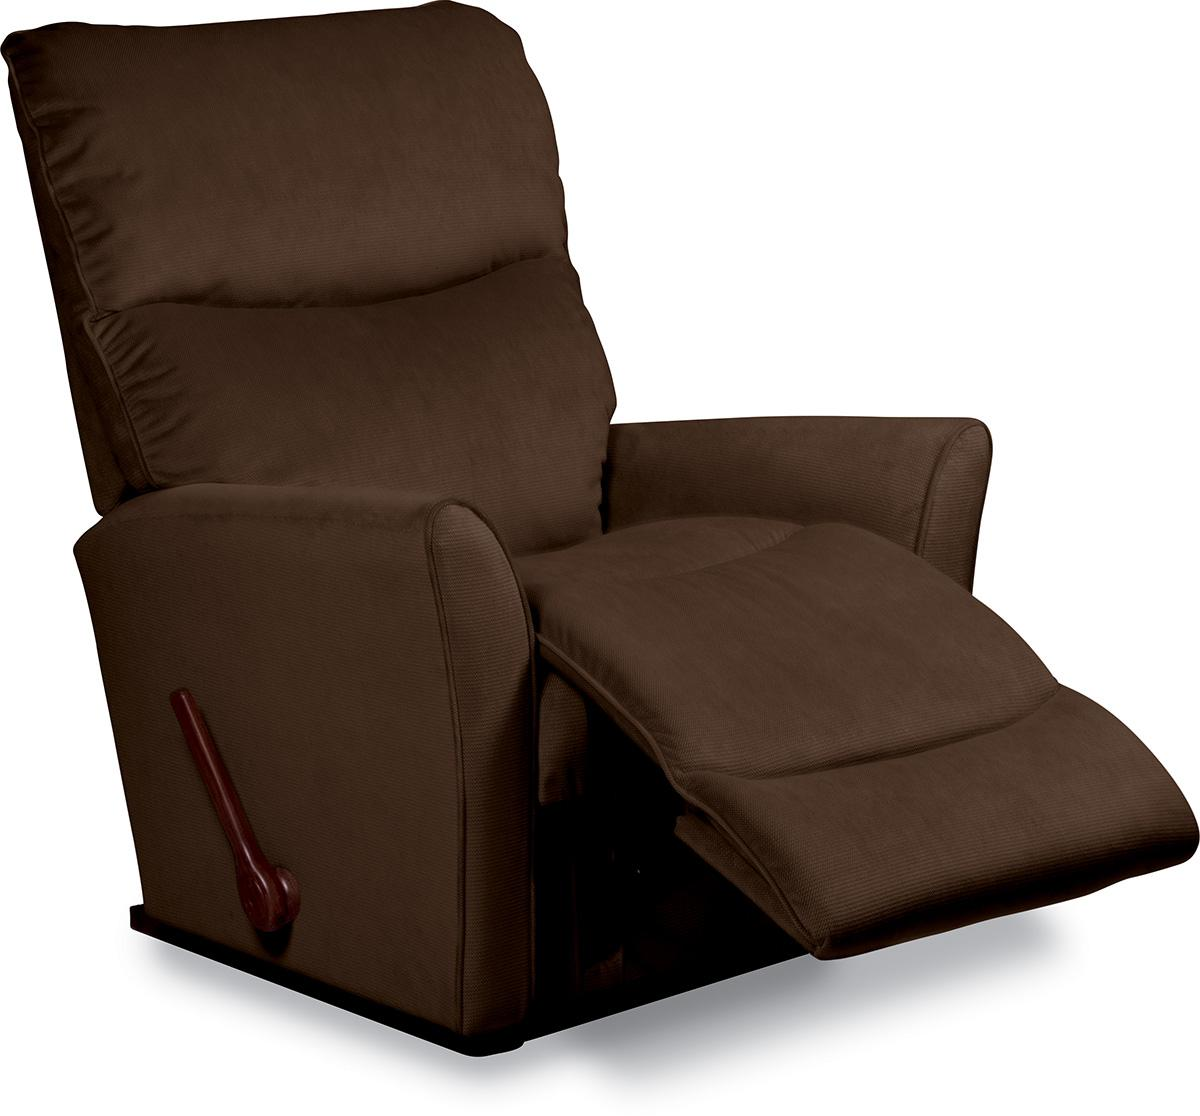 Lazy Boy Swivel Chair Recliners Rowan Small Scale Reclina Glider Swivel